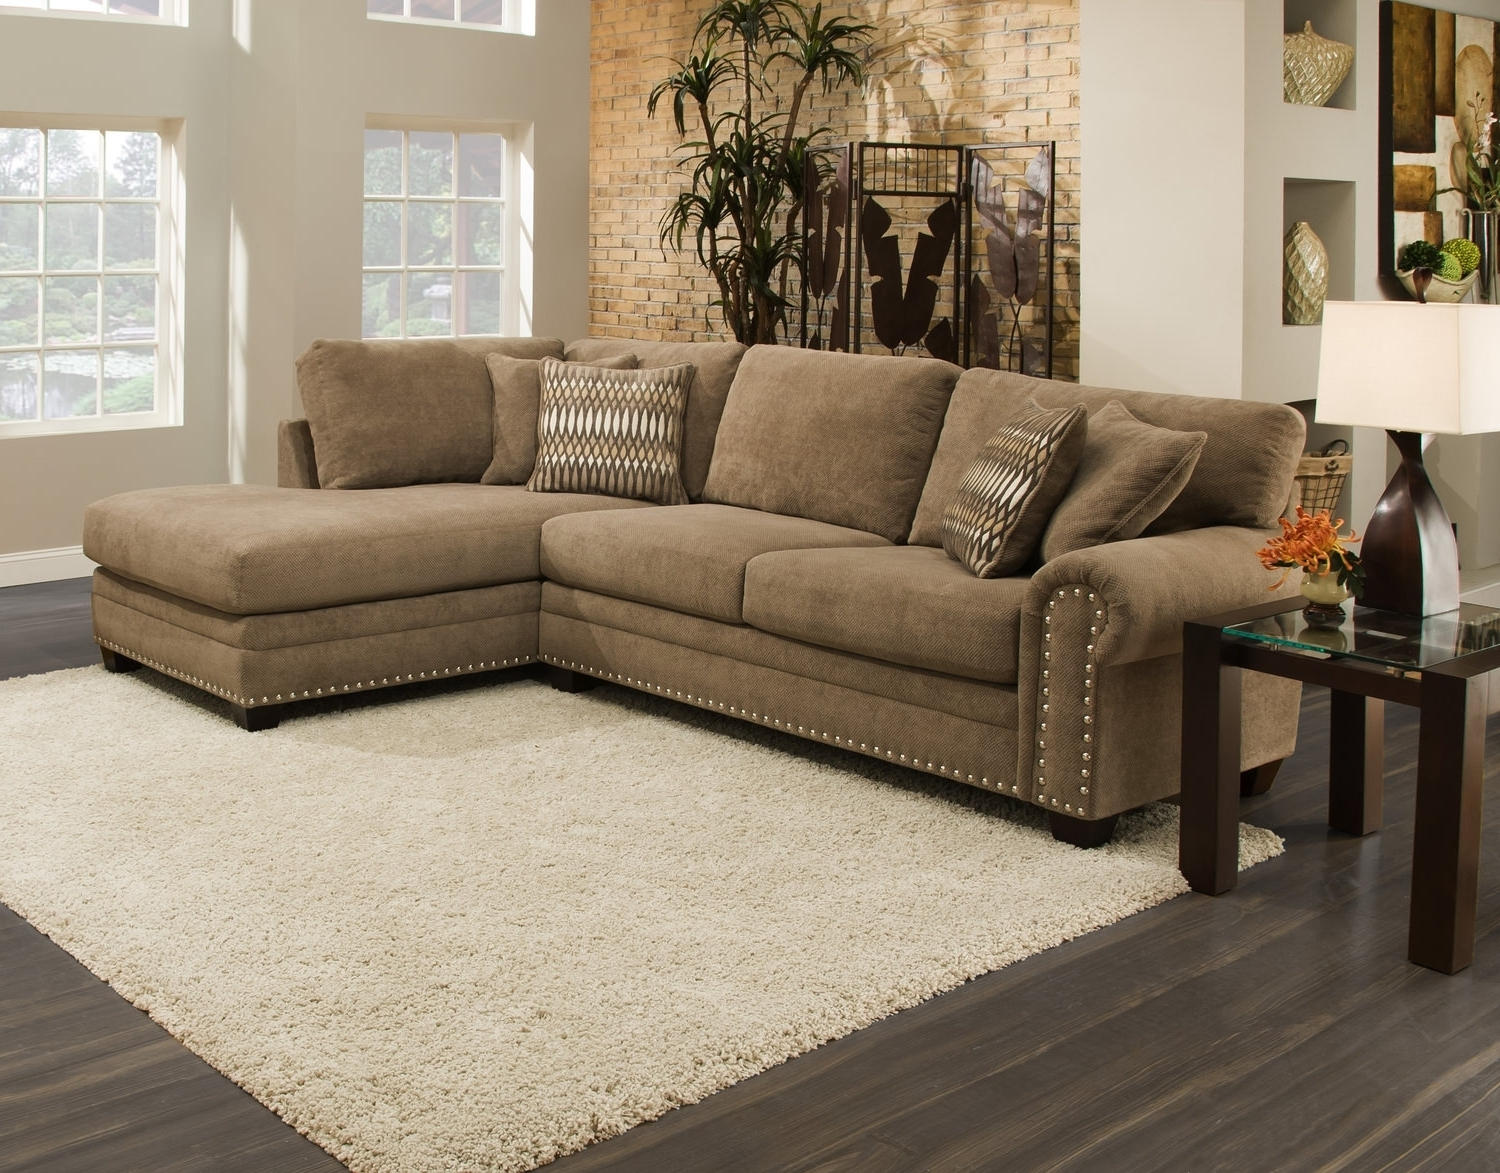 Duluth Mn Sectional Sofas With Most Recent Sectional Sofas Duluth Mn • Sectional Sofa (View 8 of 15)